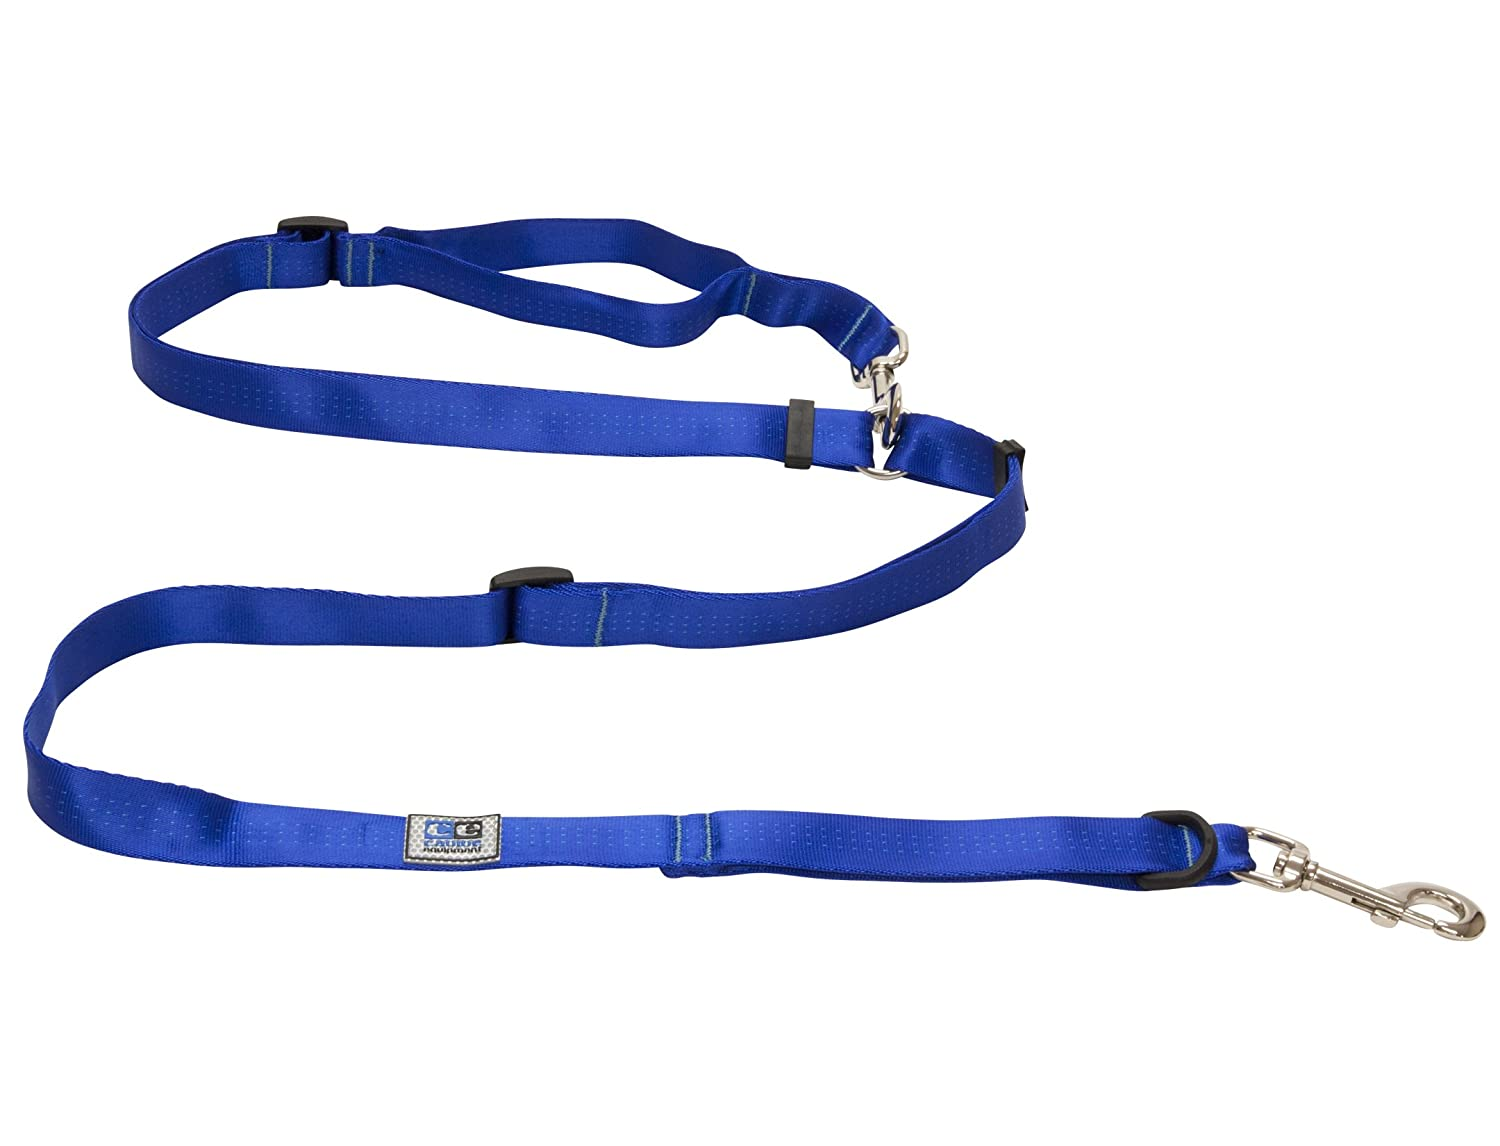 Canine Equipment 3 4-Inch Technika Beyond Control Dog Leash, bluee